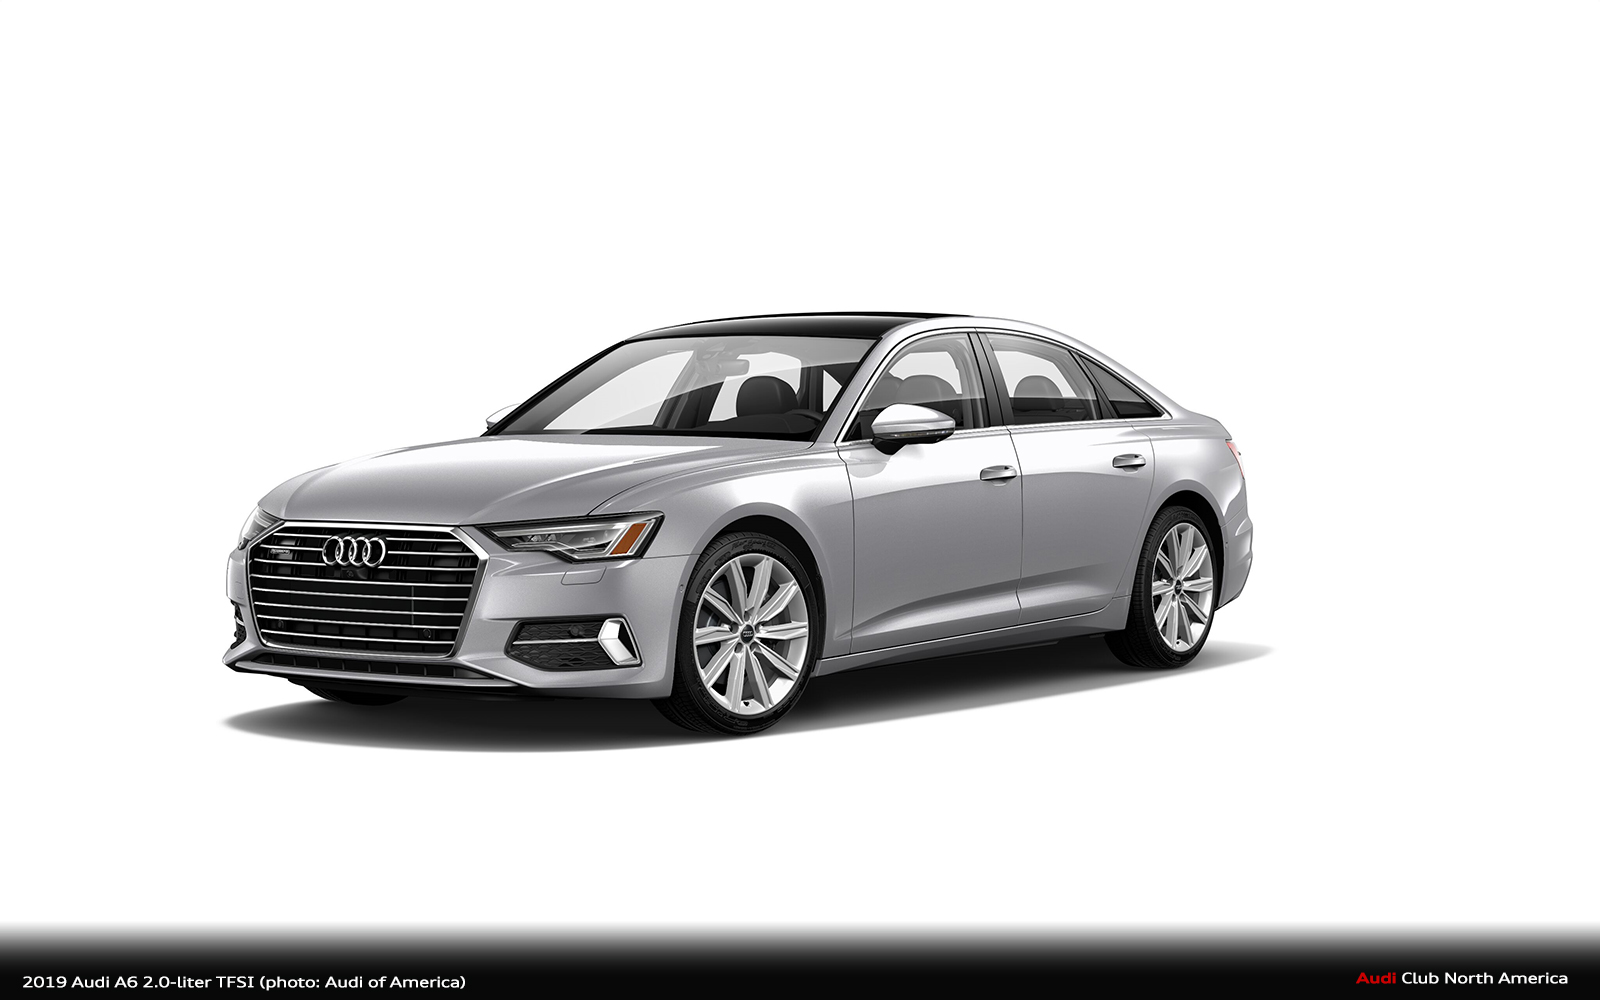 2019 Audi A6 2.0-Liter TFSI® Delivers Greater Value to Brand's Mid-Size Sedan Segment